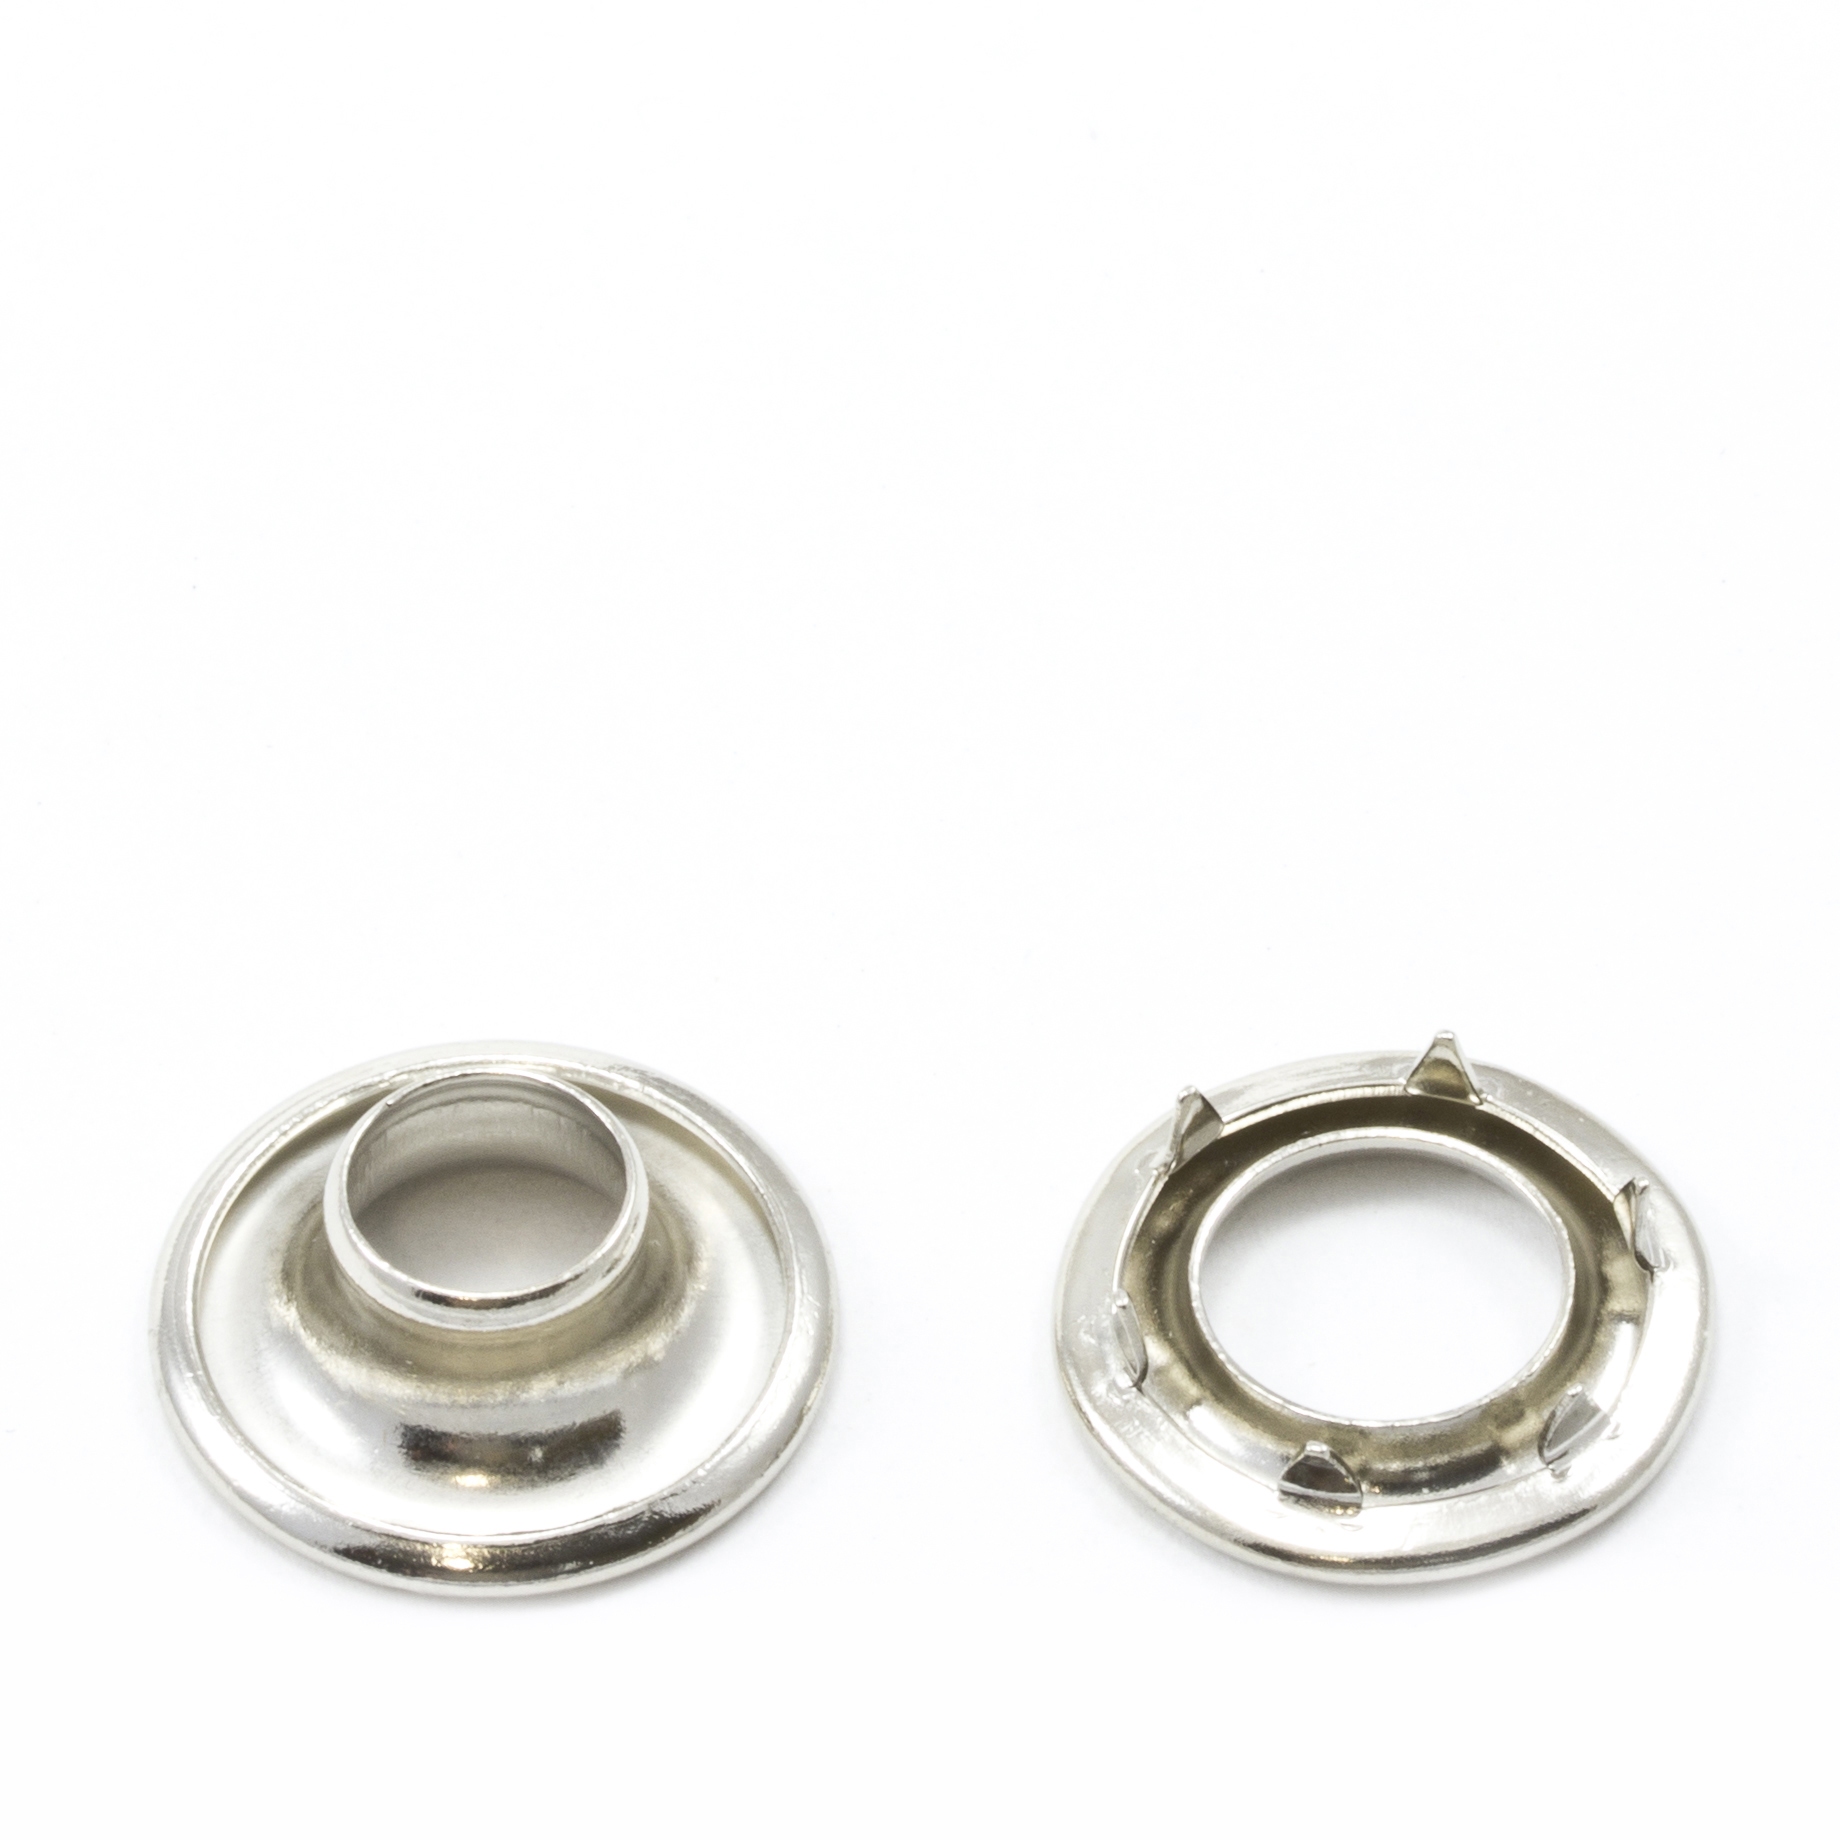 Rolled Rim Grommet with Spur Washer #0 Brass Nickel Plated 9/32